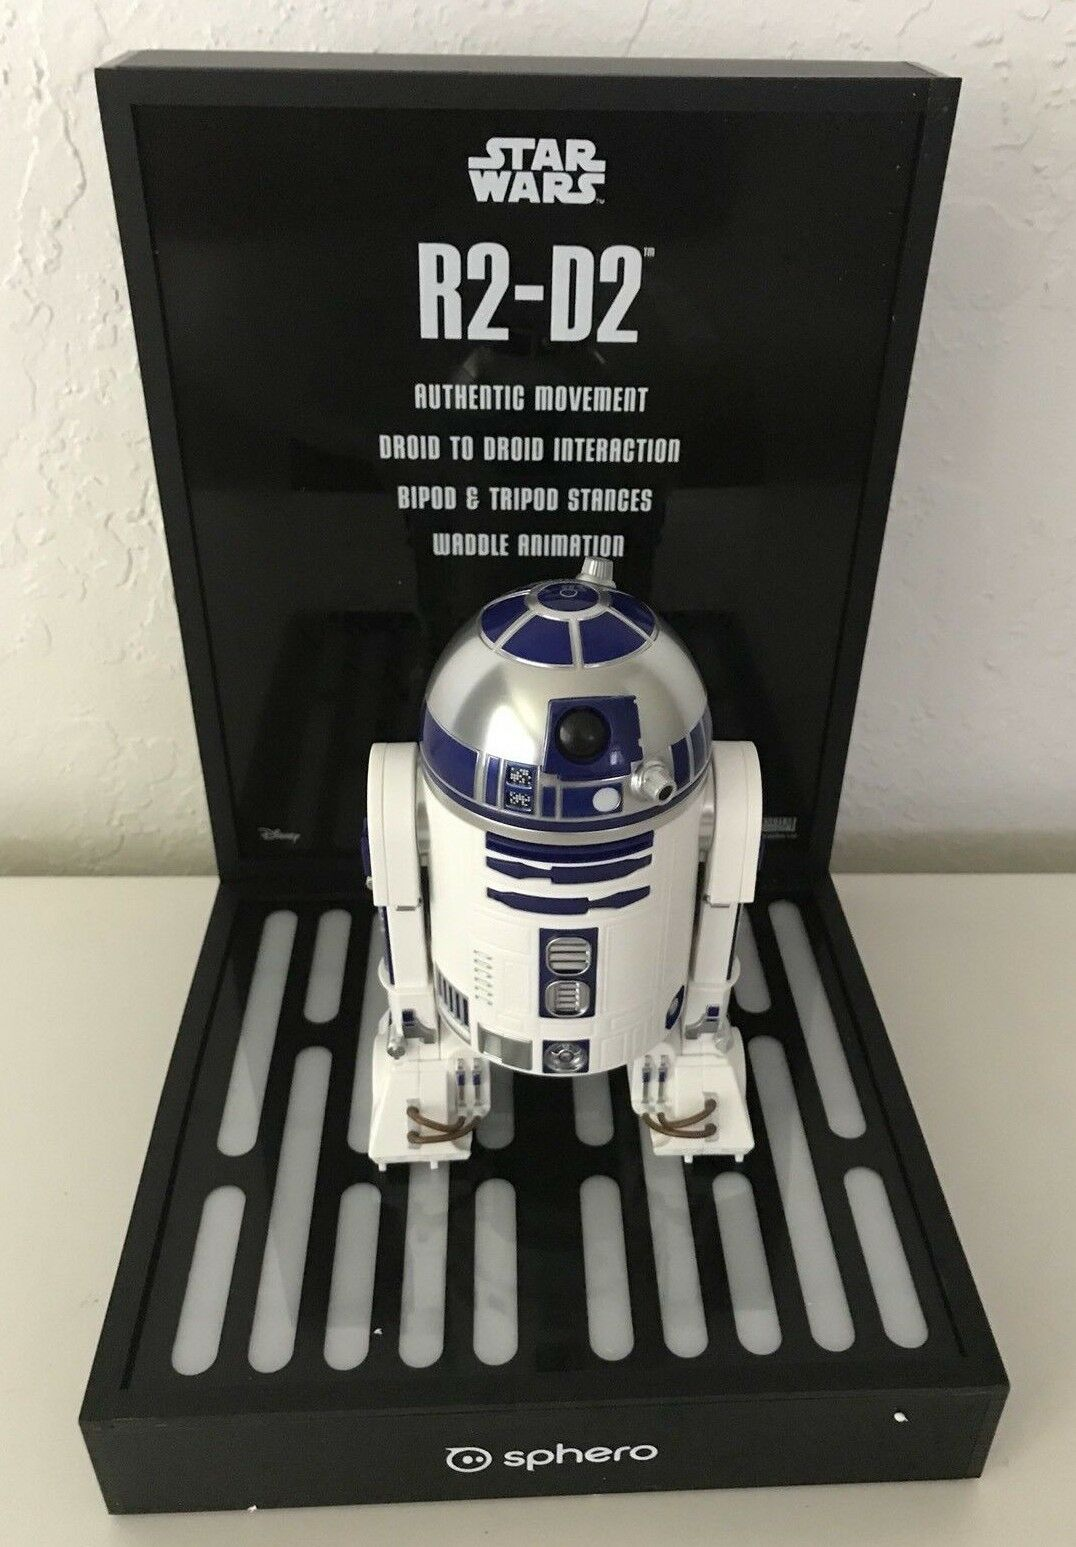 RARE Star Wars Sphero Sphero Sphero Toy Store Display R2D2 757868